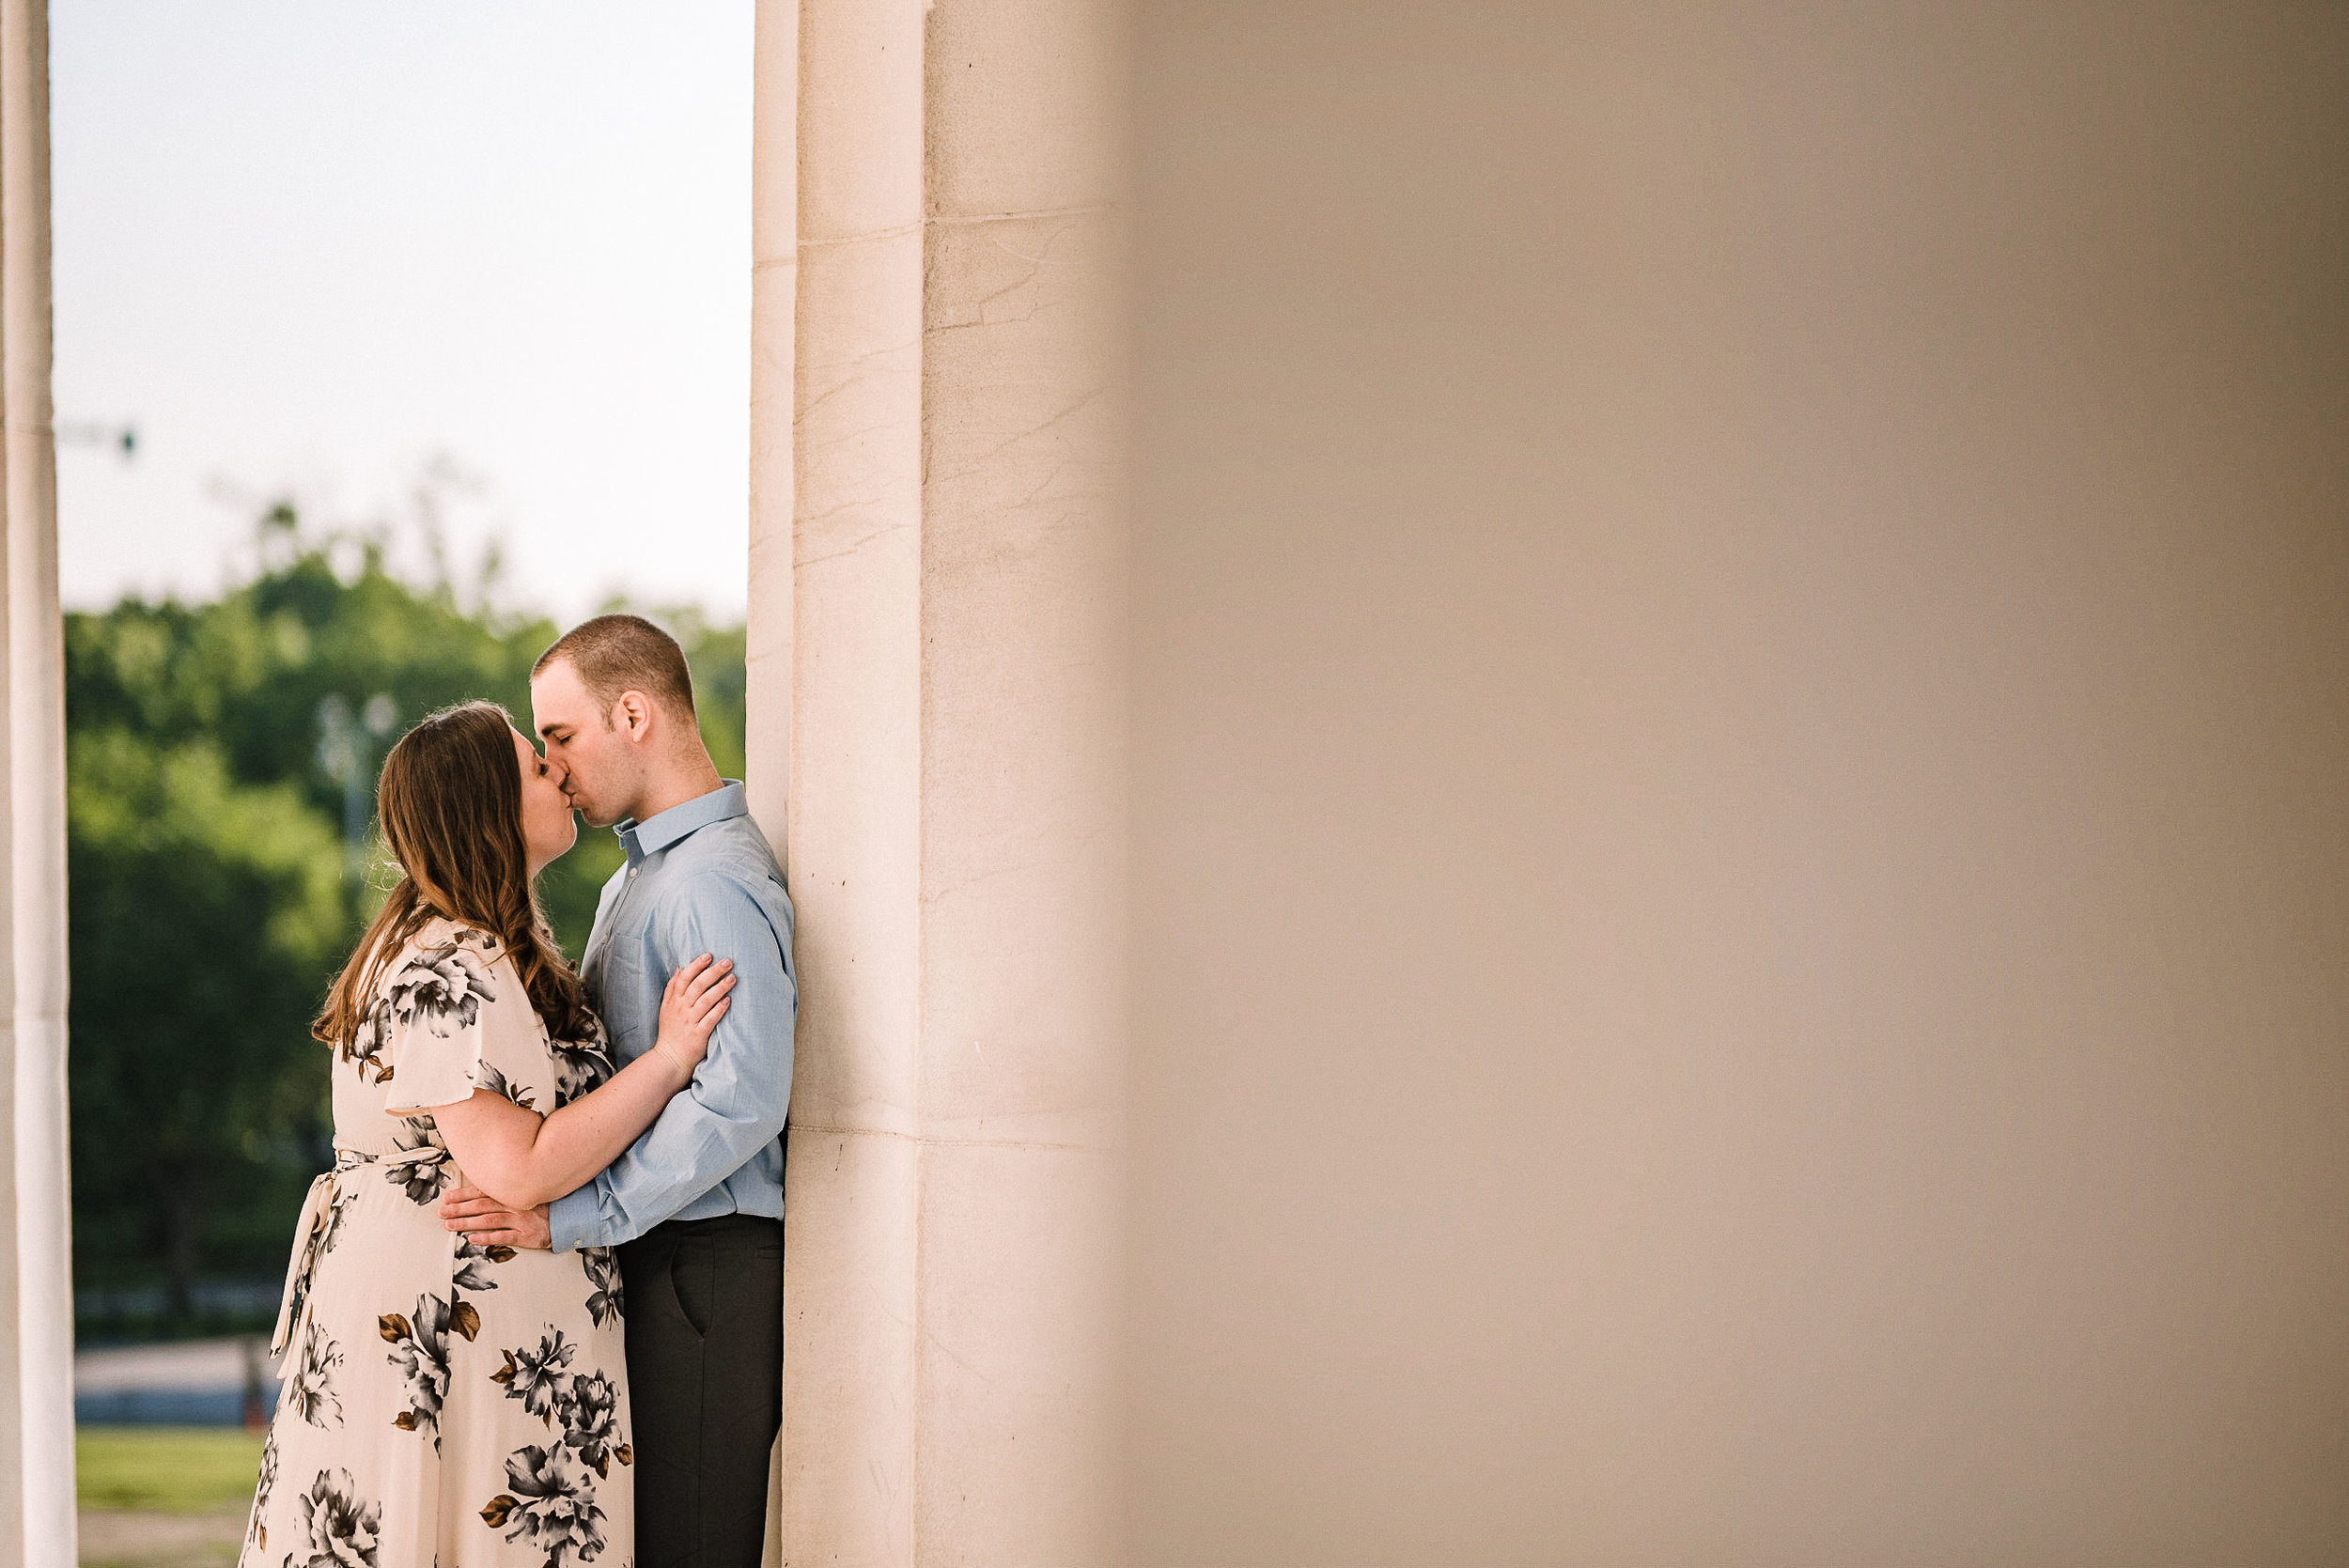 Lincoln Memorial Engagement Session in Washington DC